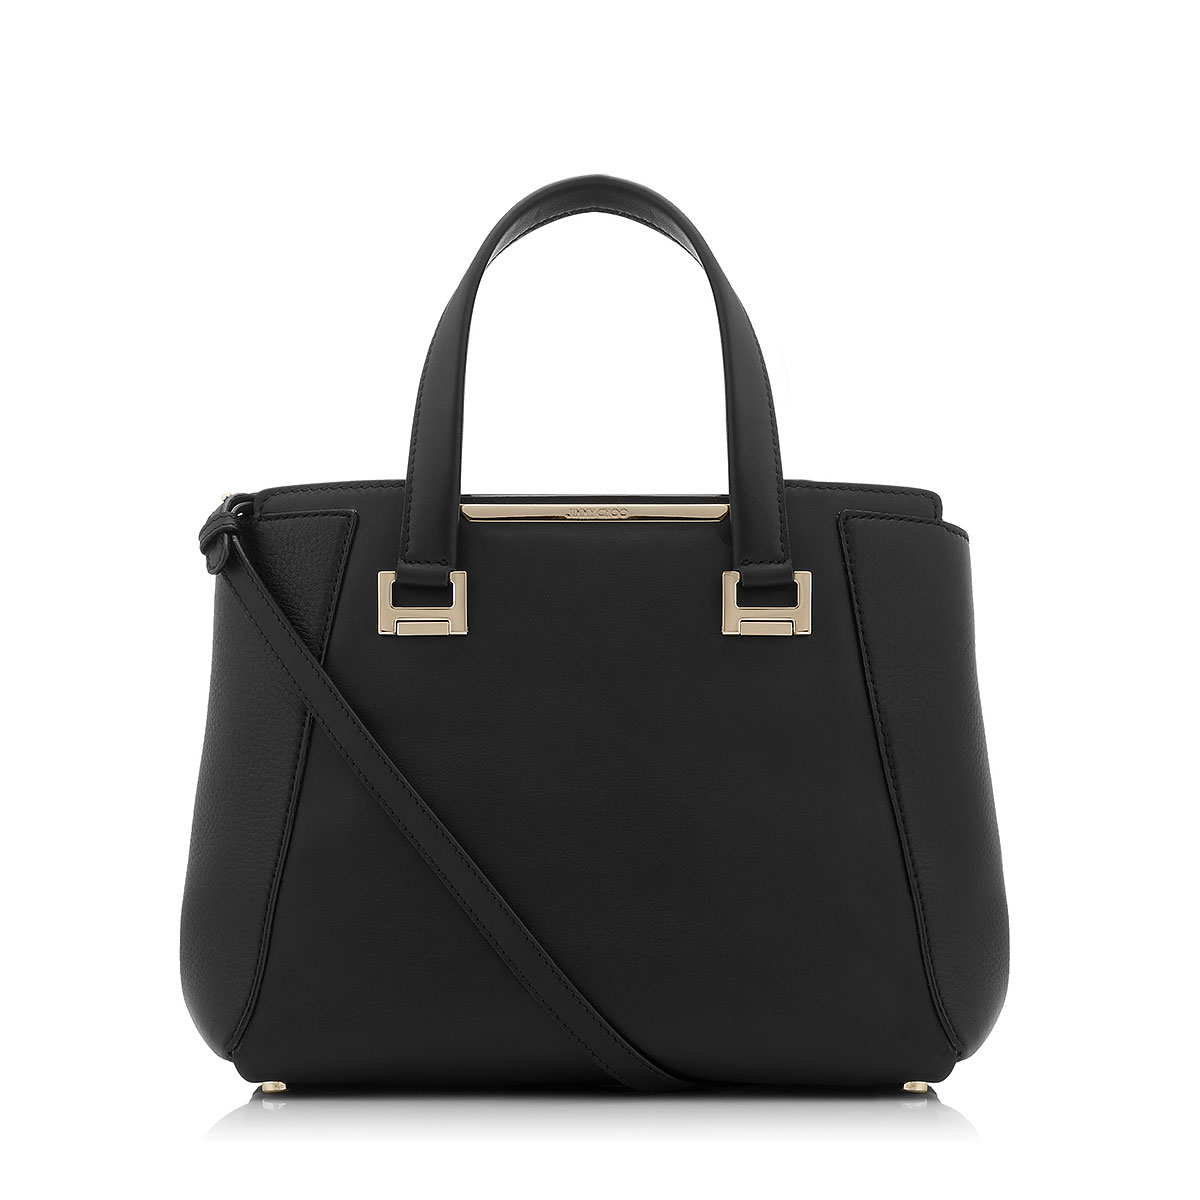 ALFIE Black Soft Smooth and Soft Calf Leather Tote Bag